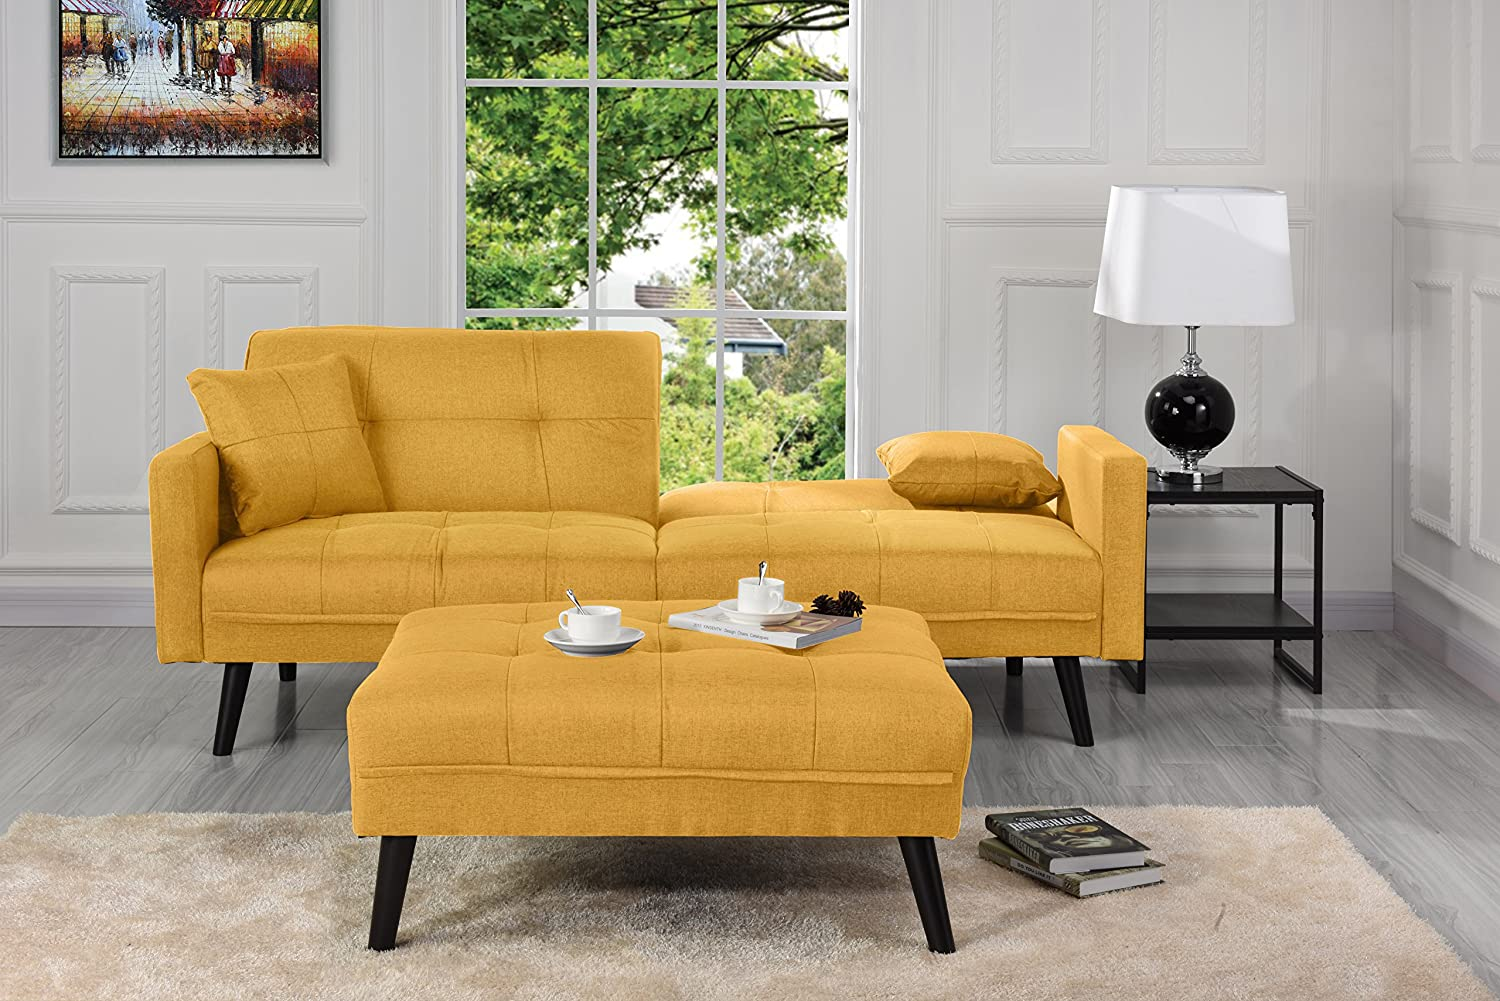 Amazon com sofamania mid century modern linen fabric futon small space living room couch yellow kitchen dining